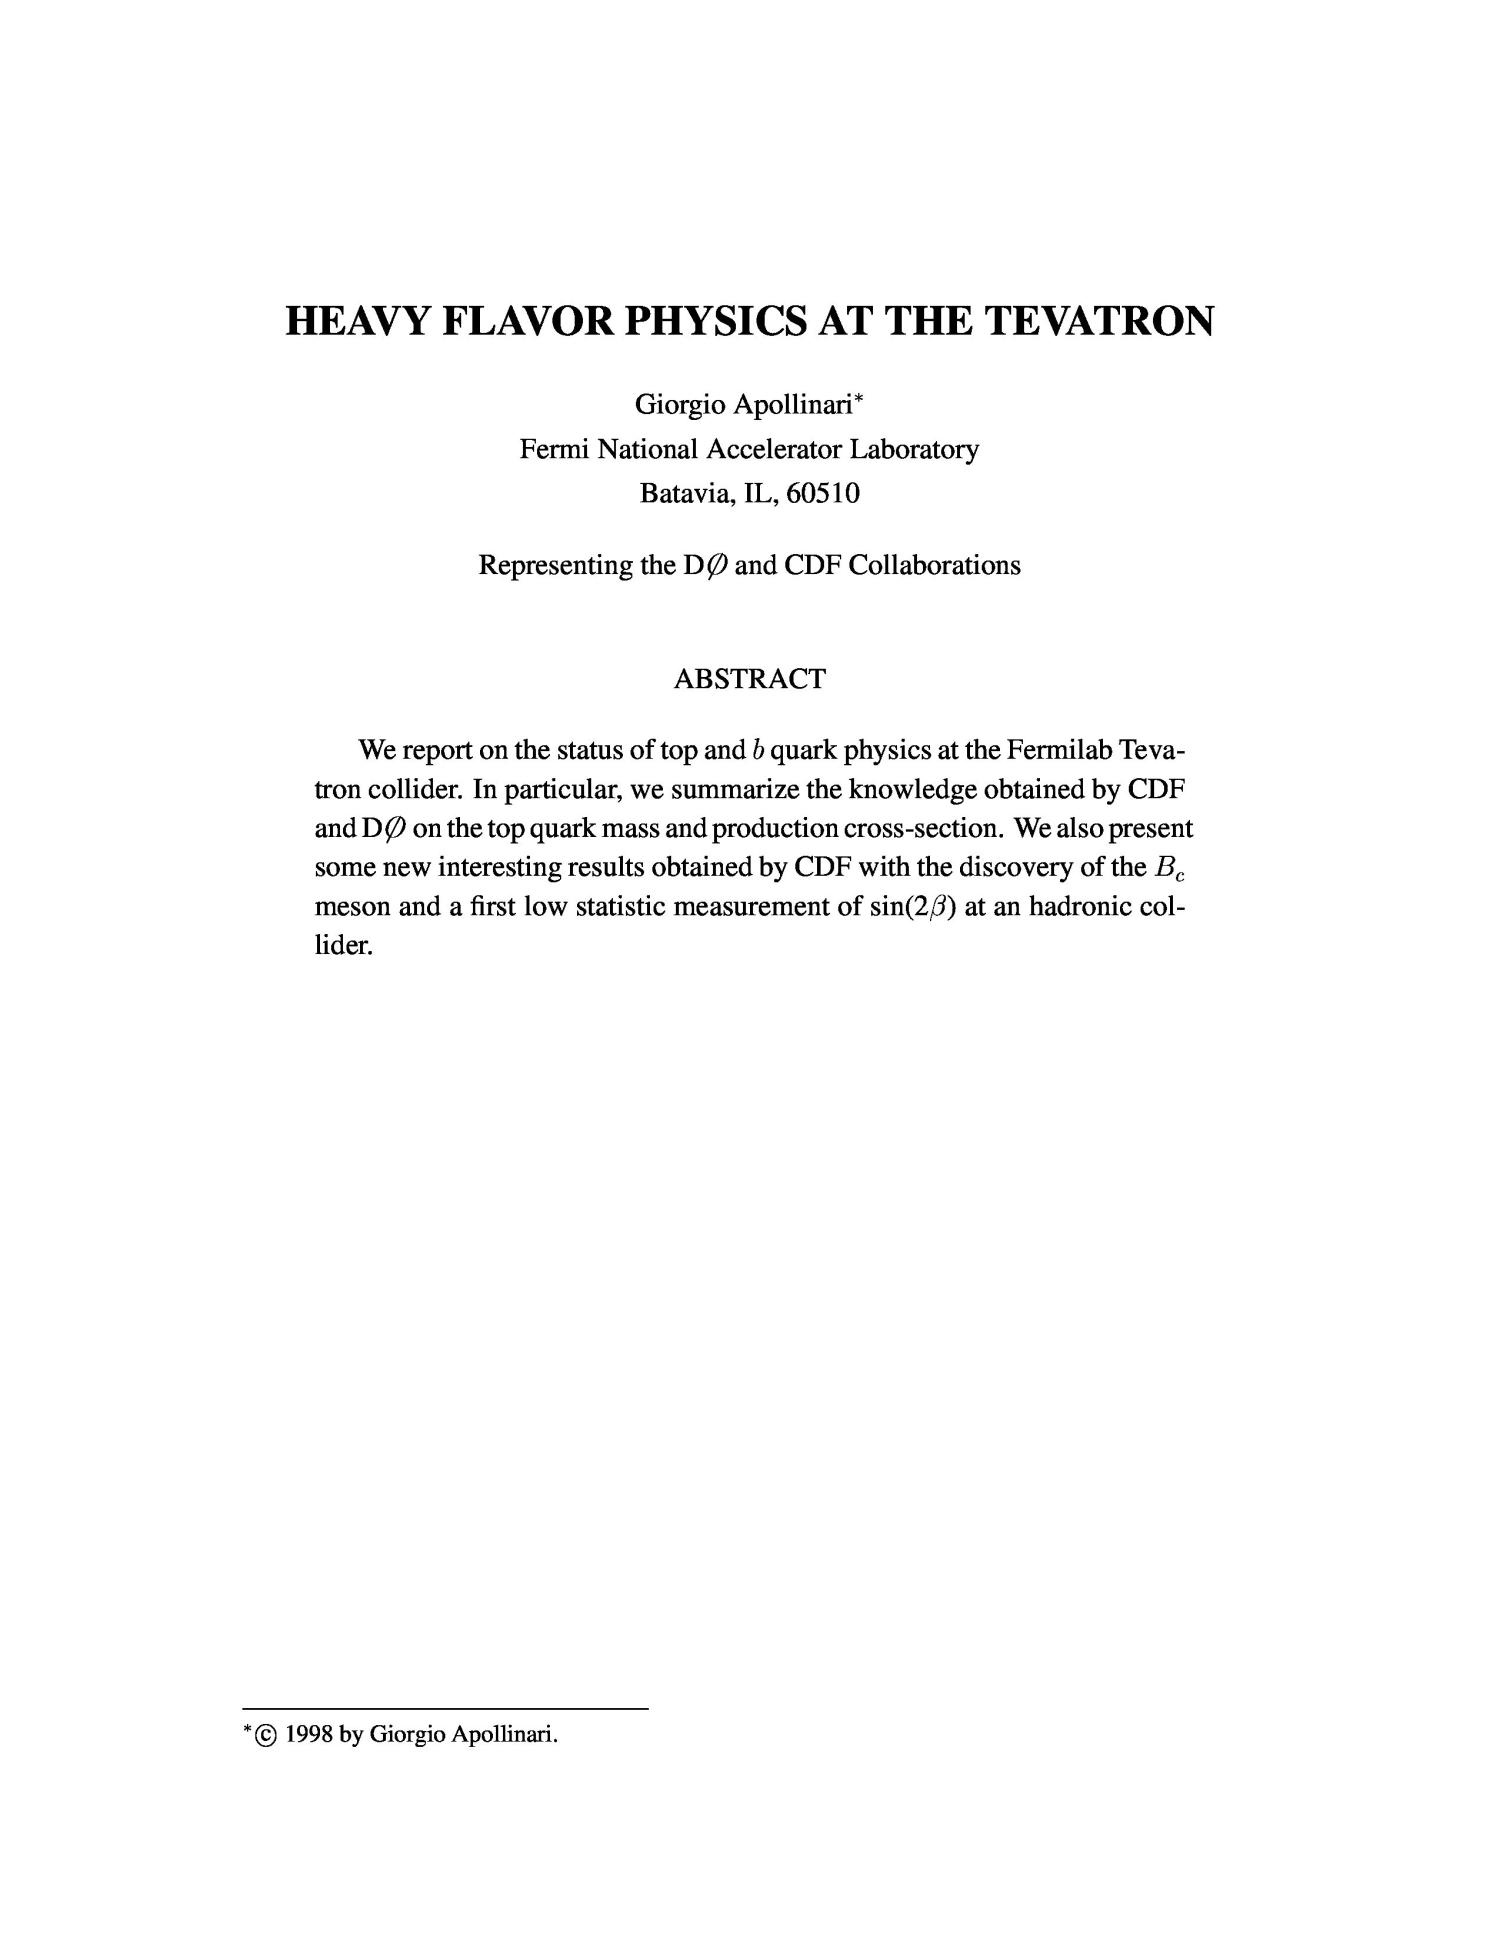 Heavy flavor physics at the Tevatron                                                                                                      [Sequence #]: 3 of 45